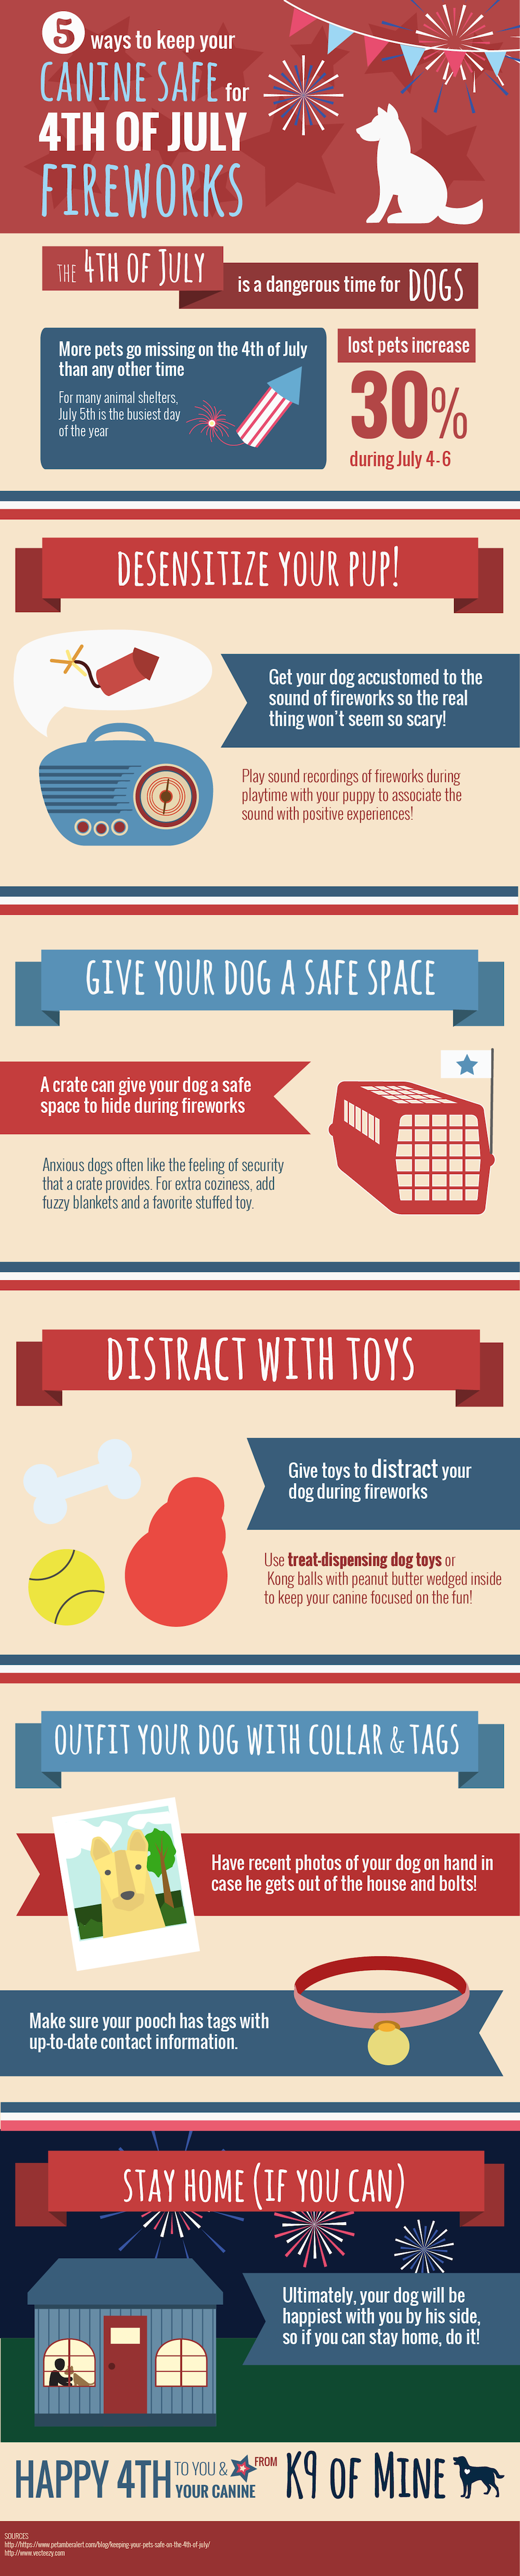 Keeping pets safe during fourth of july fireworks and celebrations